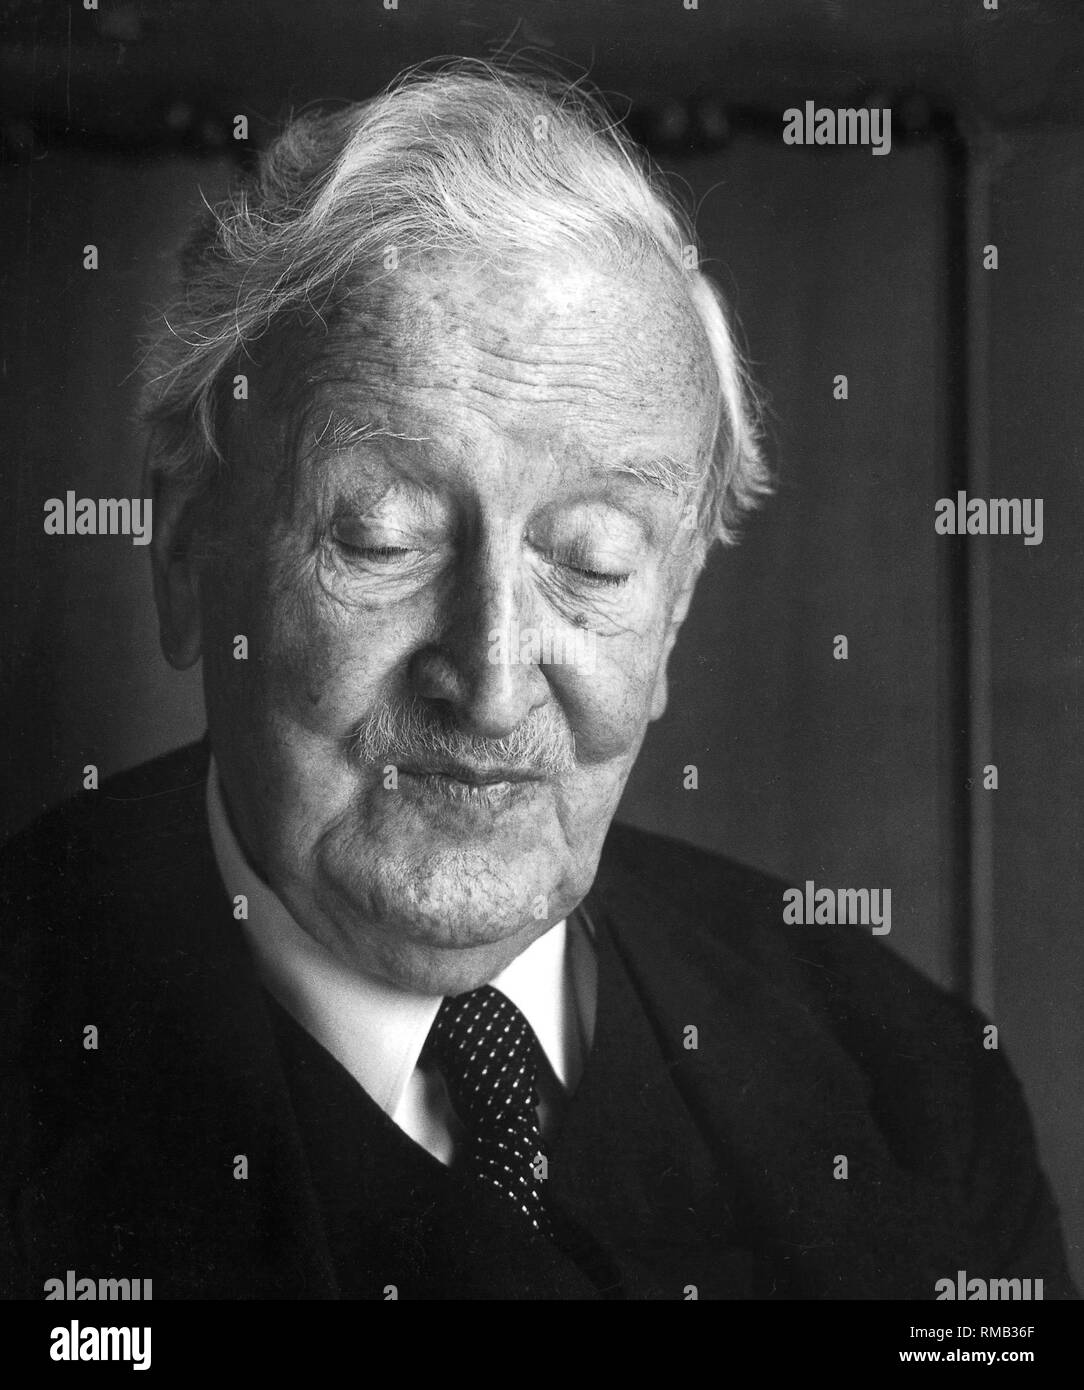 Hermann Josef Abs (1901-1994), German banking and financial expert ...